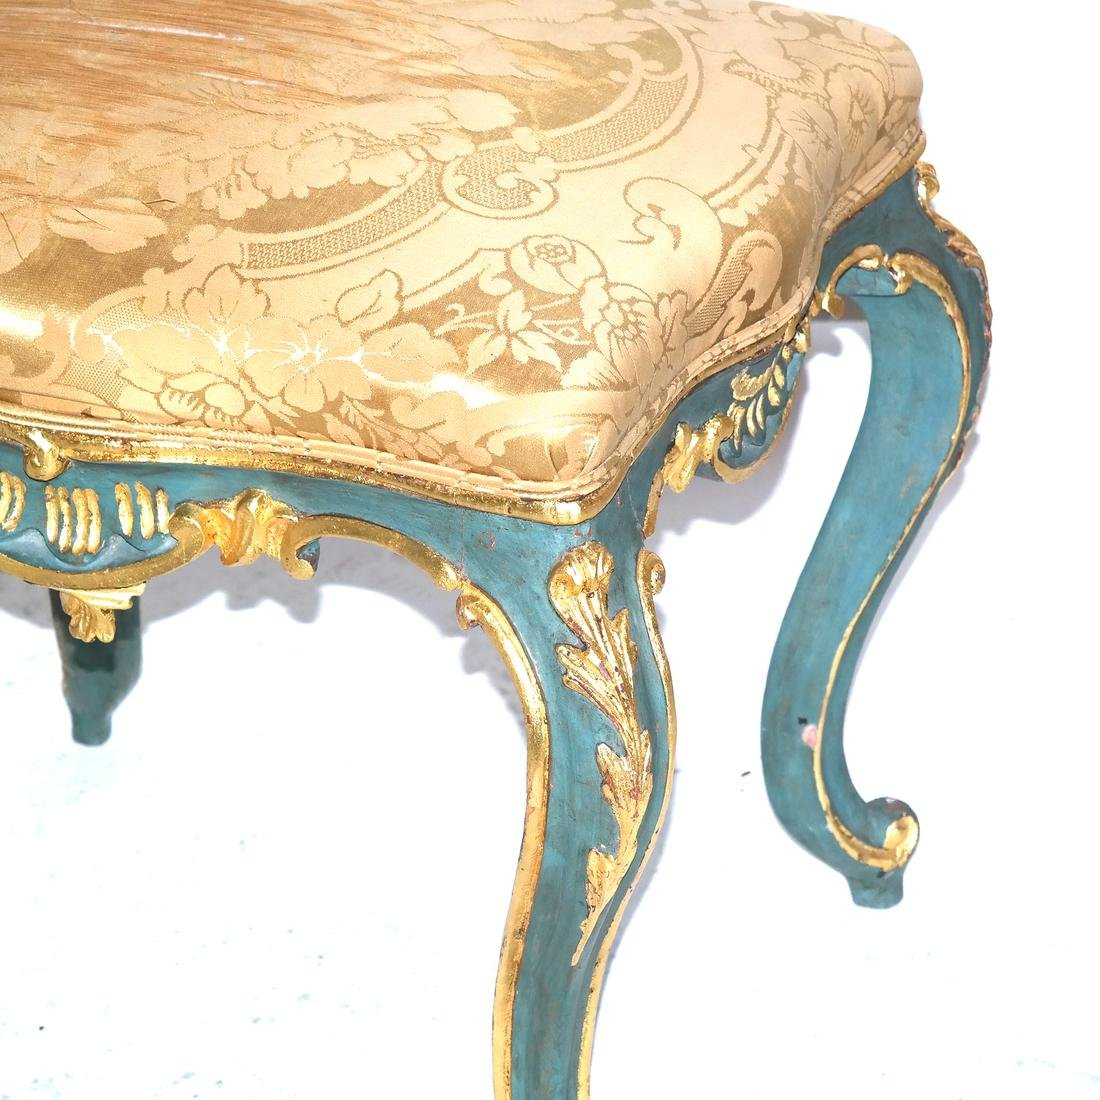 Pair of 19th C. Venetian-Style Decorated Benches - 2